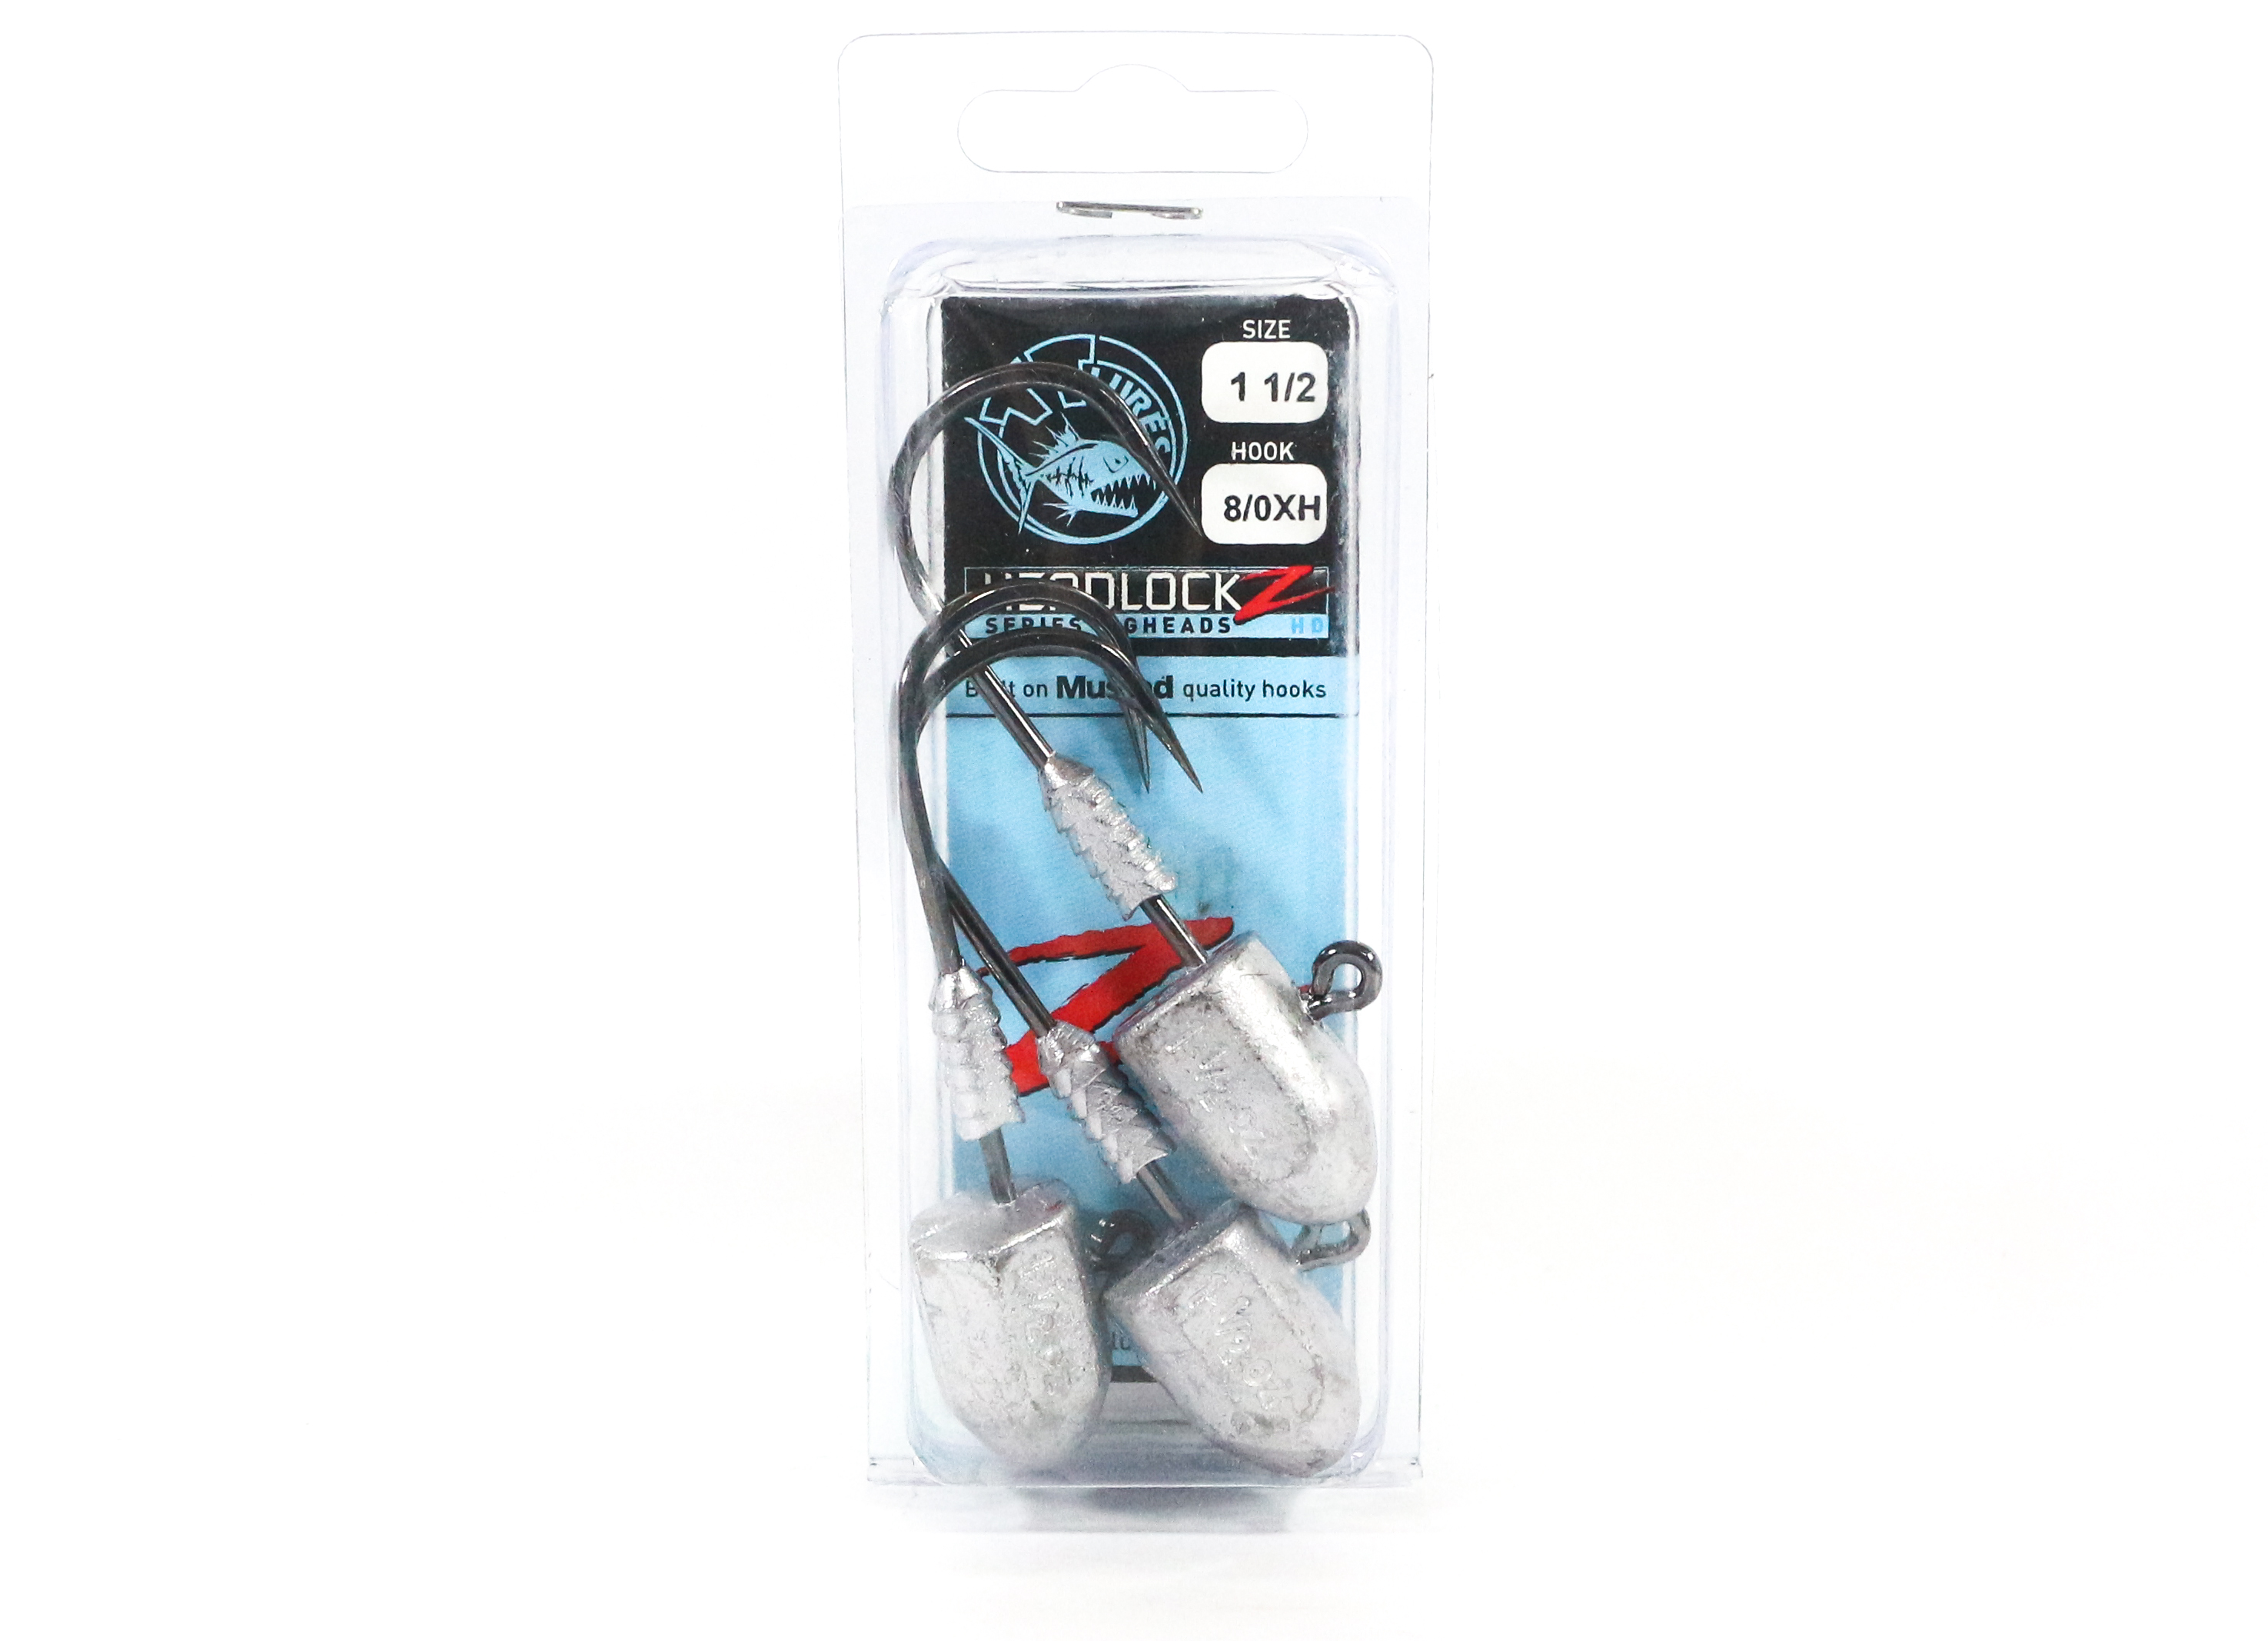 Tackle Tactics TT Headlockz HD Jig Head 1 1/2 oz 8/0 XH 3 per pack (3351)